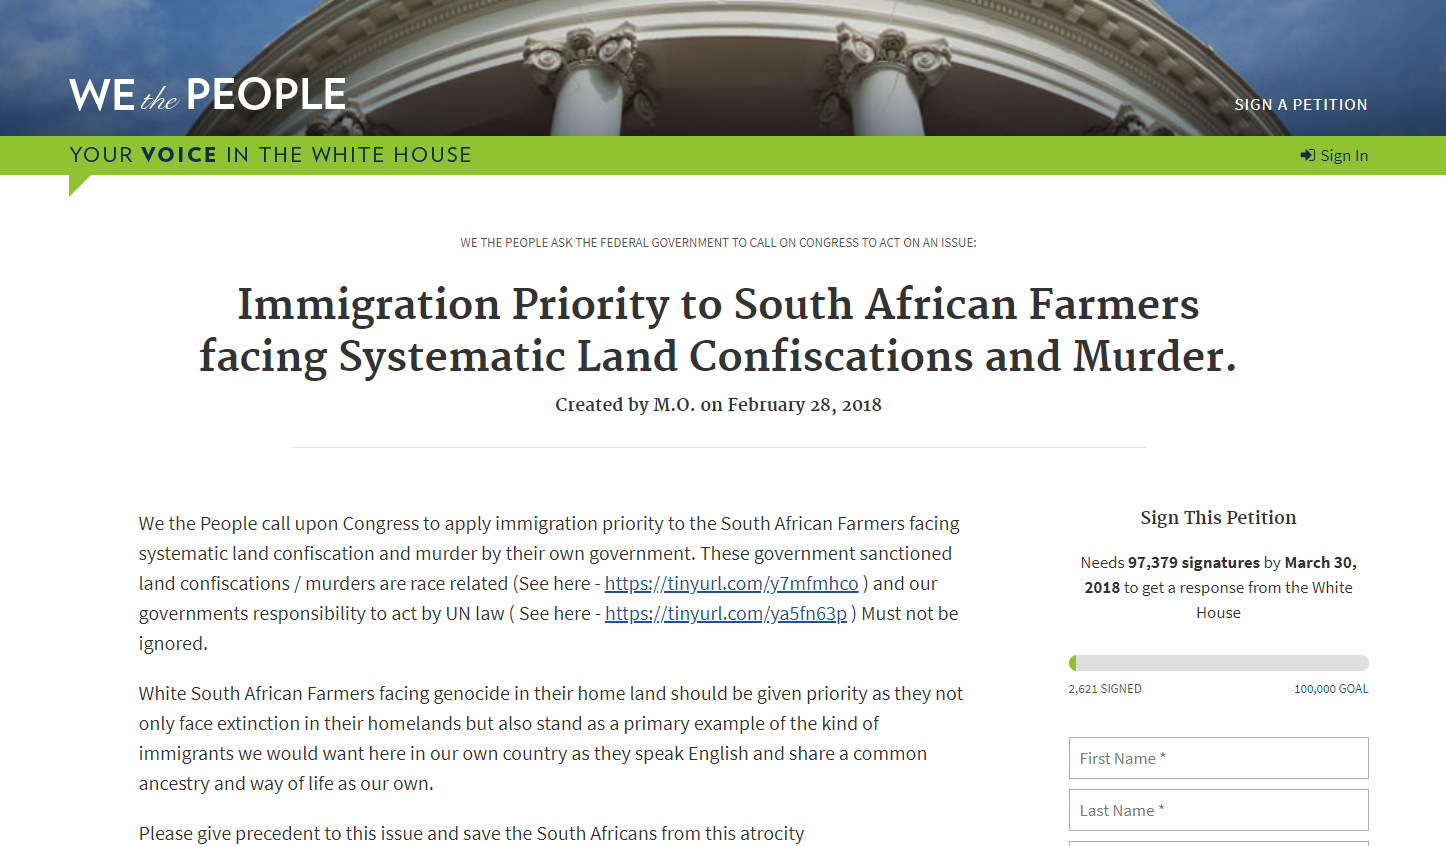 Sign and Share this Petition Asking #Trump for #ImmigrationPriority for #SouthAfrican Farmers. #WhiteGenocide